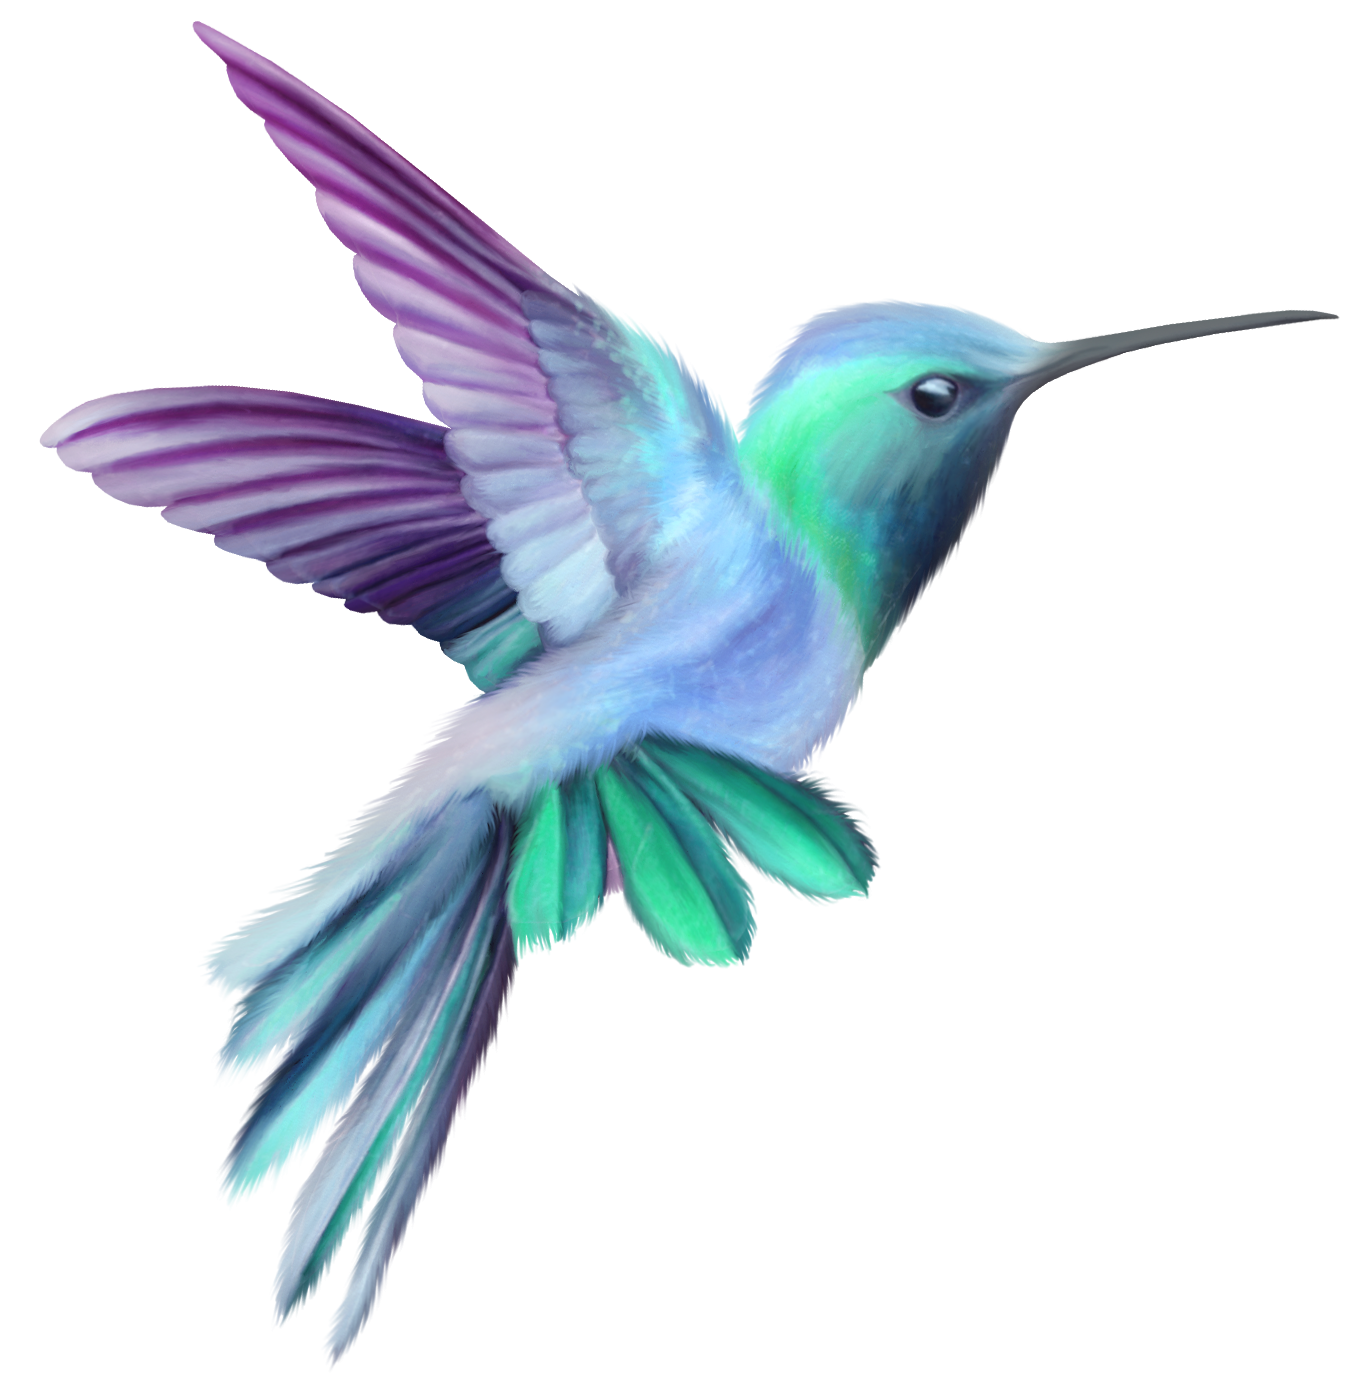 Hummingbird transparent. Clip art image gallery